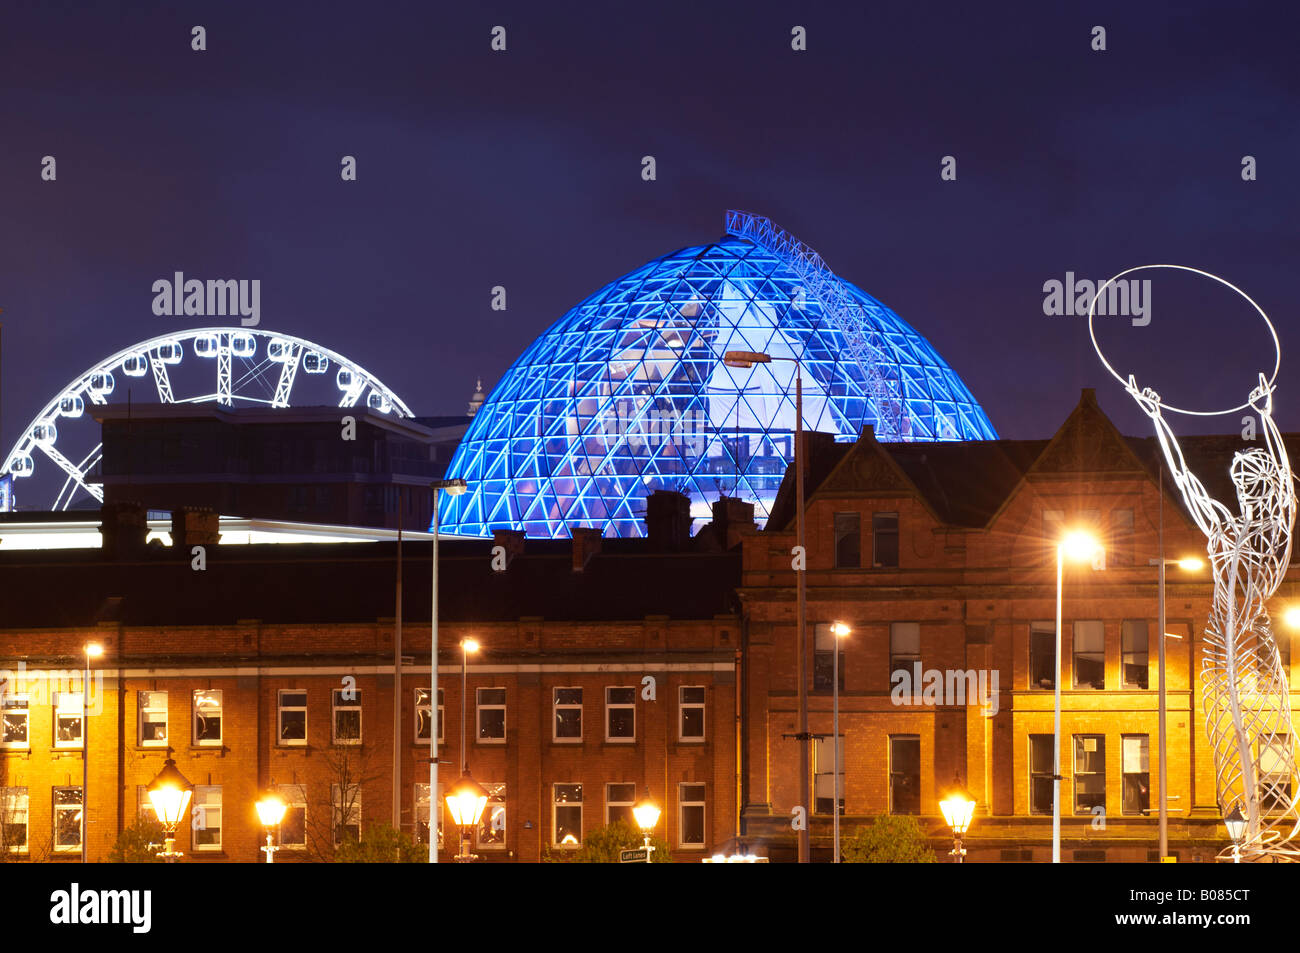 City of Belfast Landmarks - Stock Image